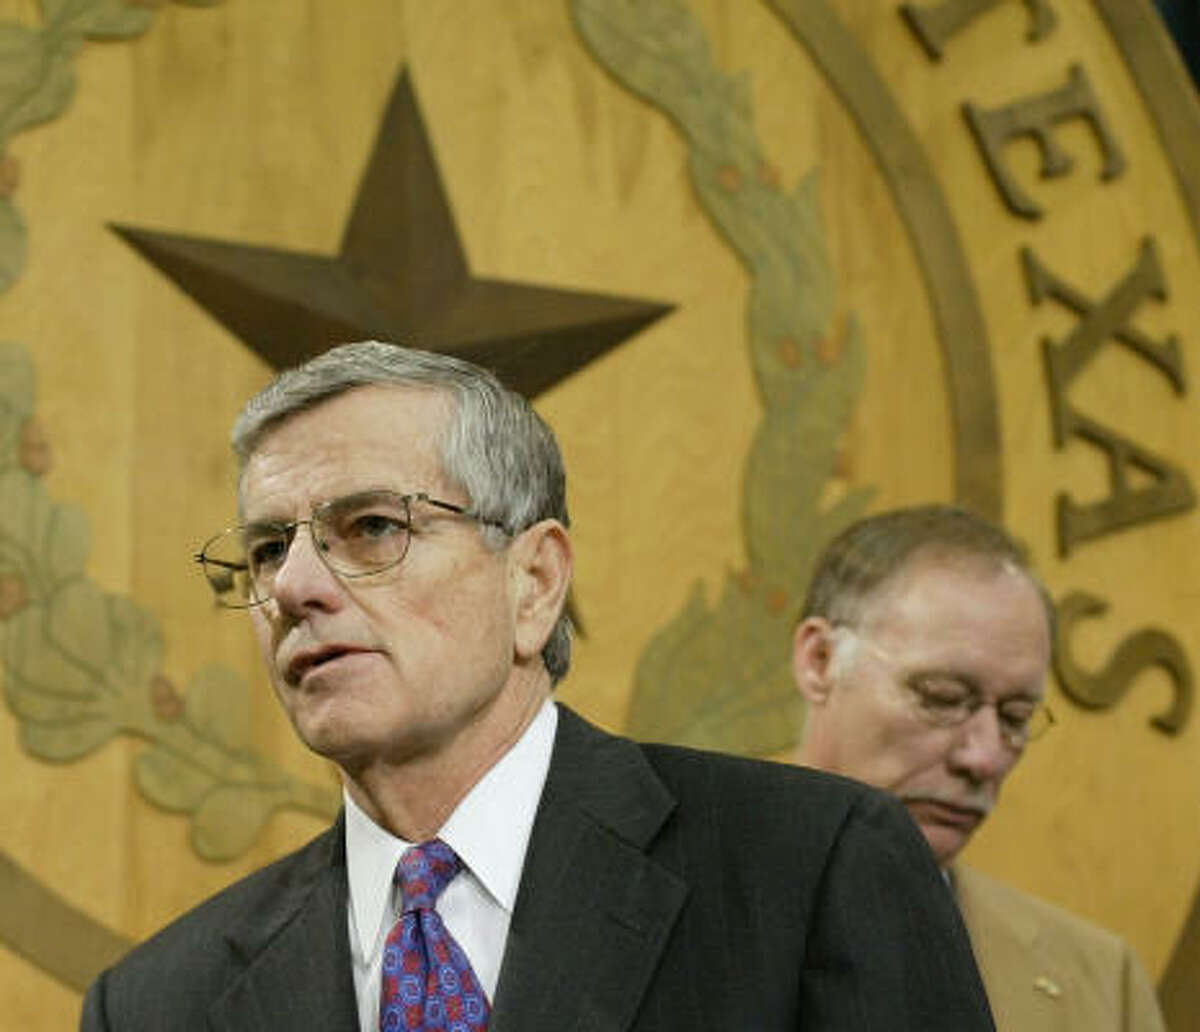 The Democratic gains and the loss of some of his leadership team made Texas House Speaker Tom Craddick, R-Midland, look vulnerable to a challenge.